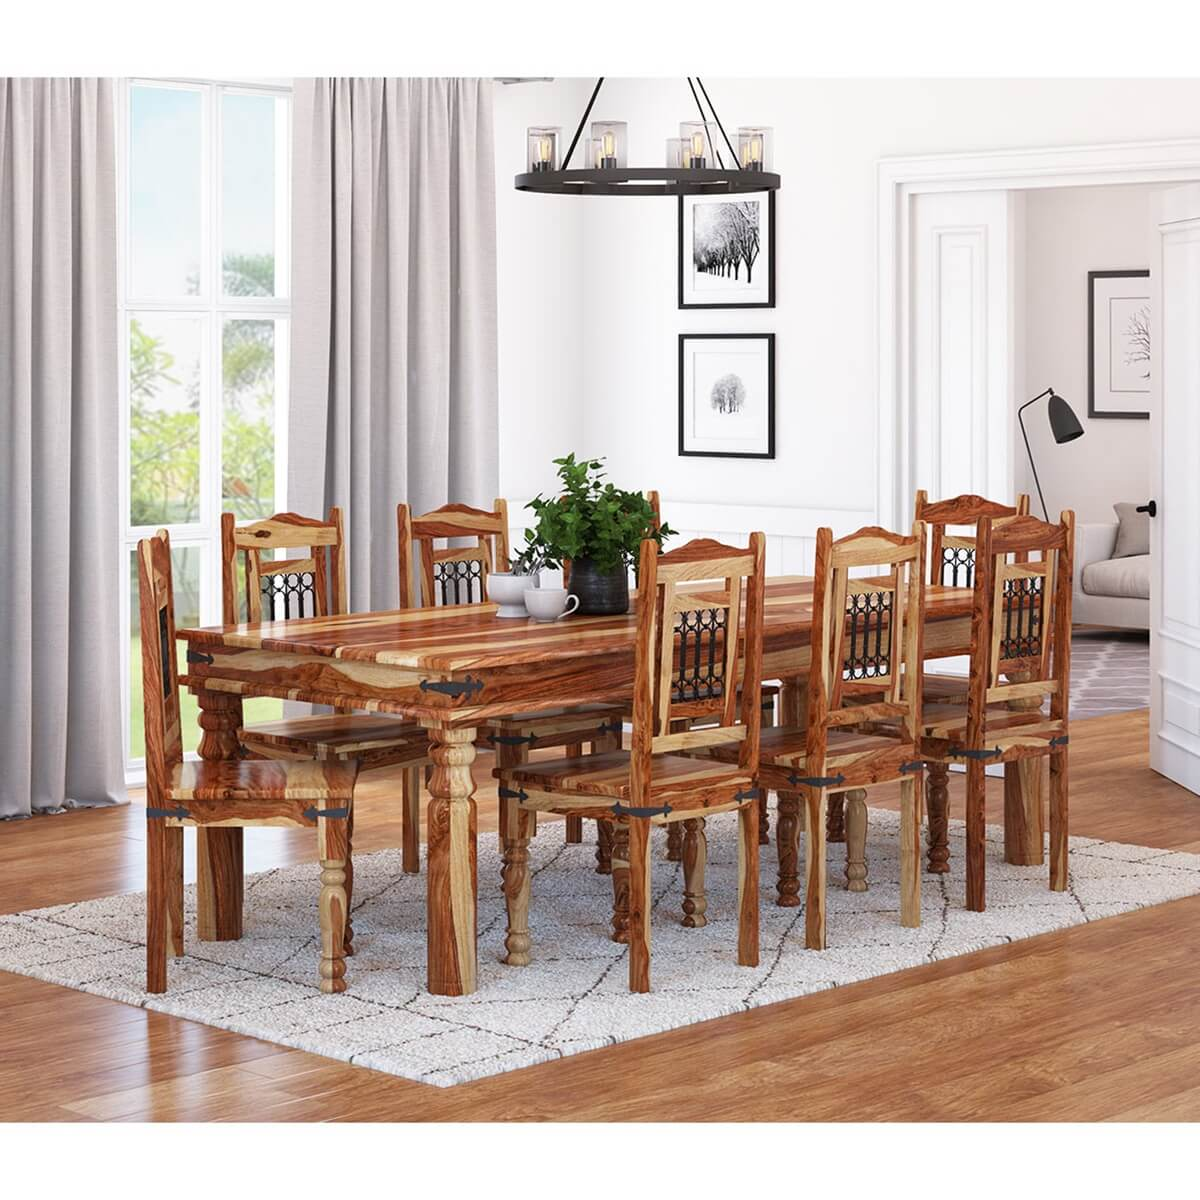 Picture of: Dallas Classic Solid Wood Rustic Dining Room Table And Chair Set